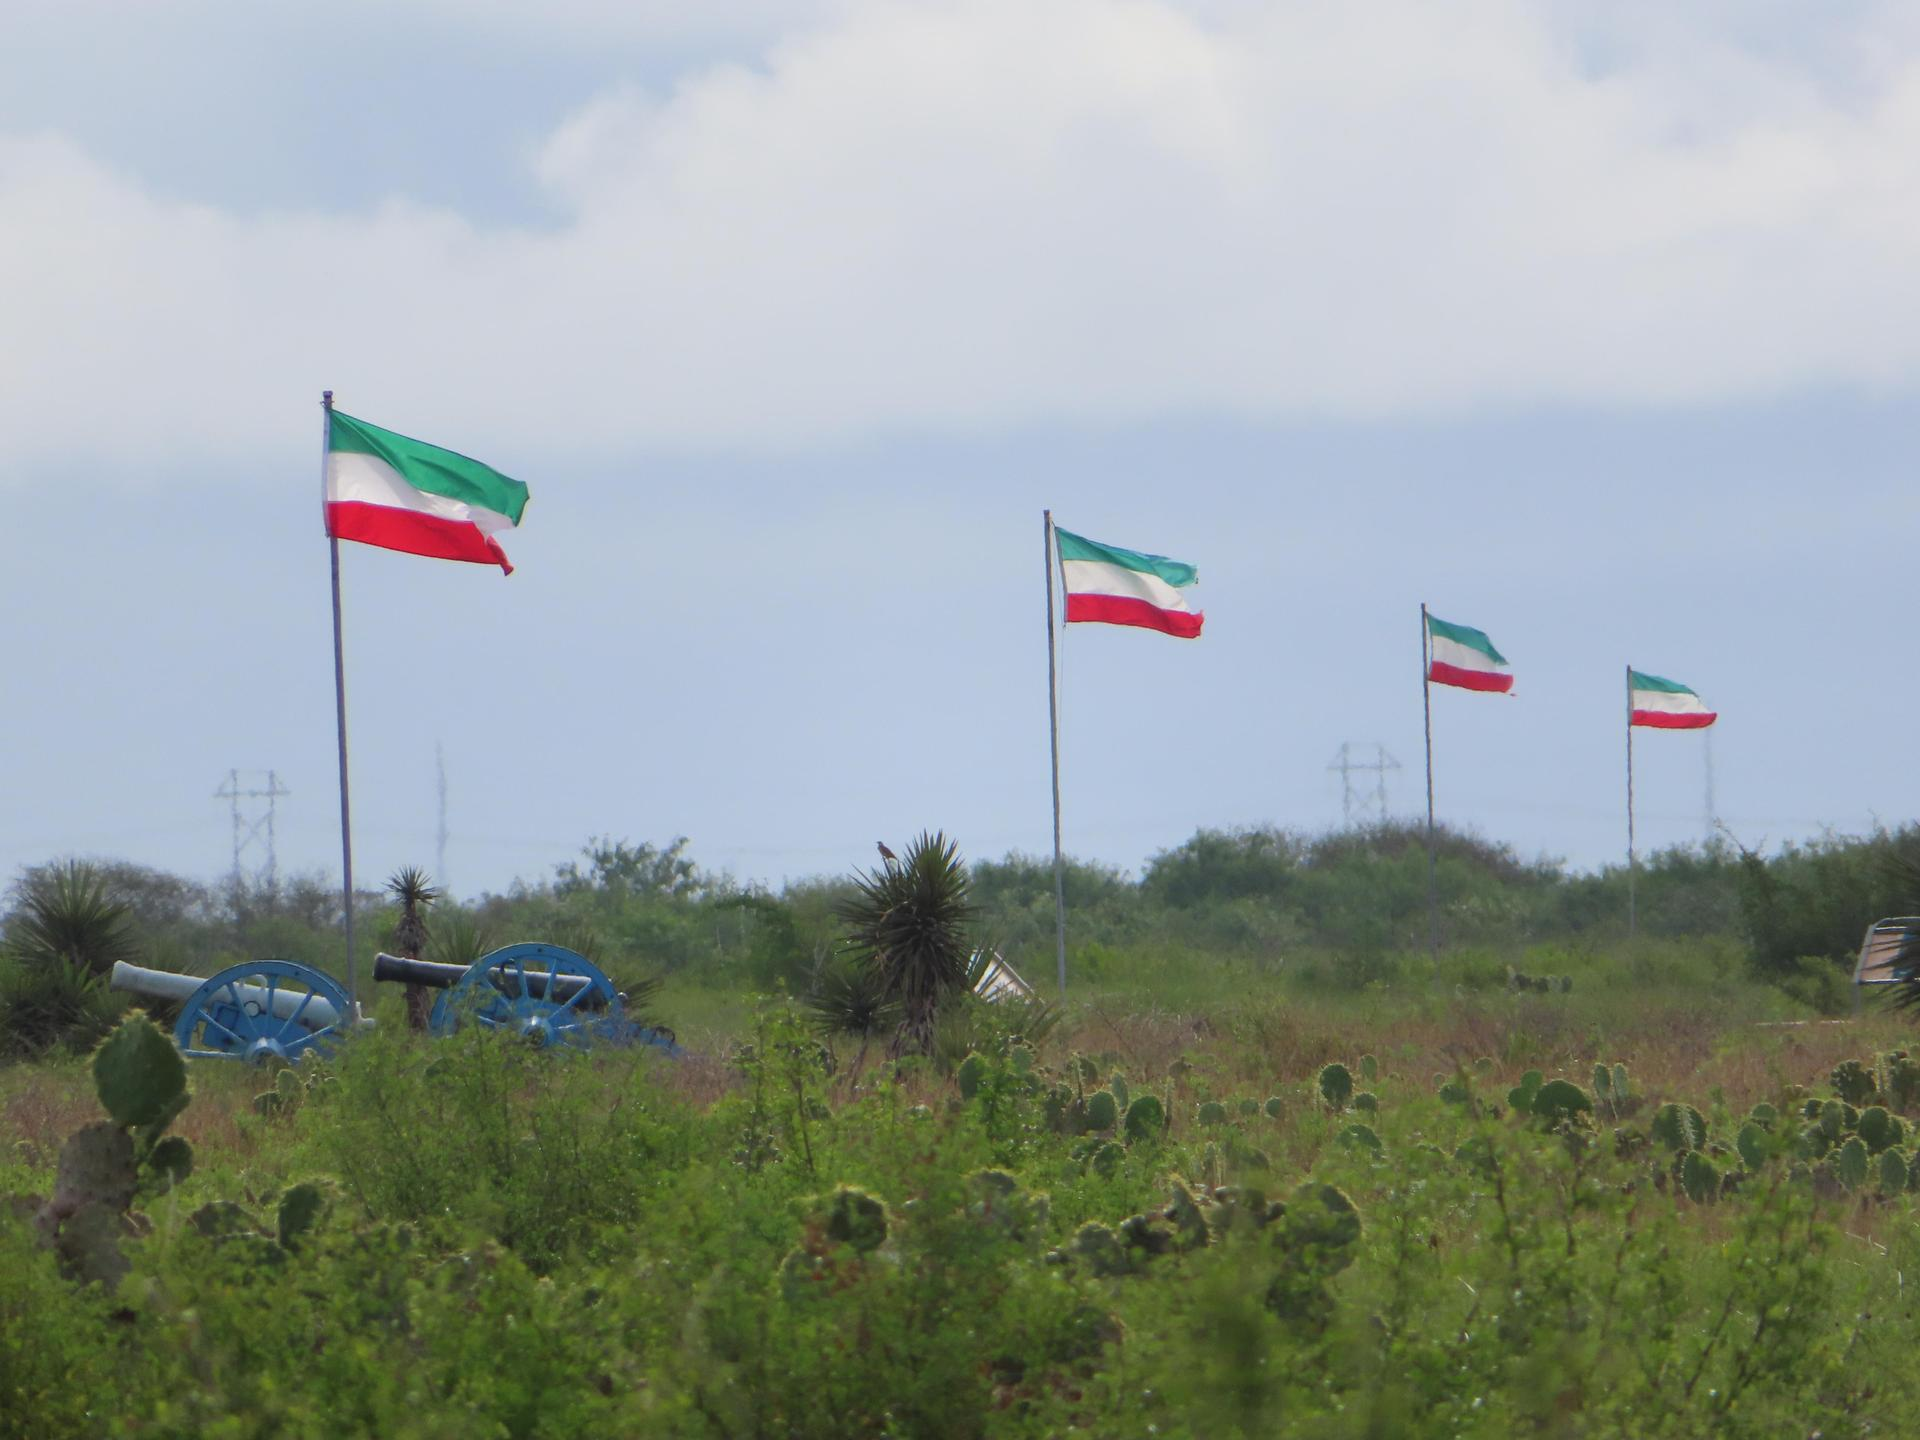 Flags and cannons on grassland